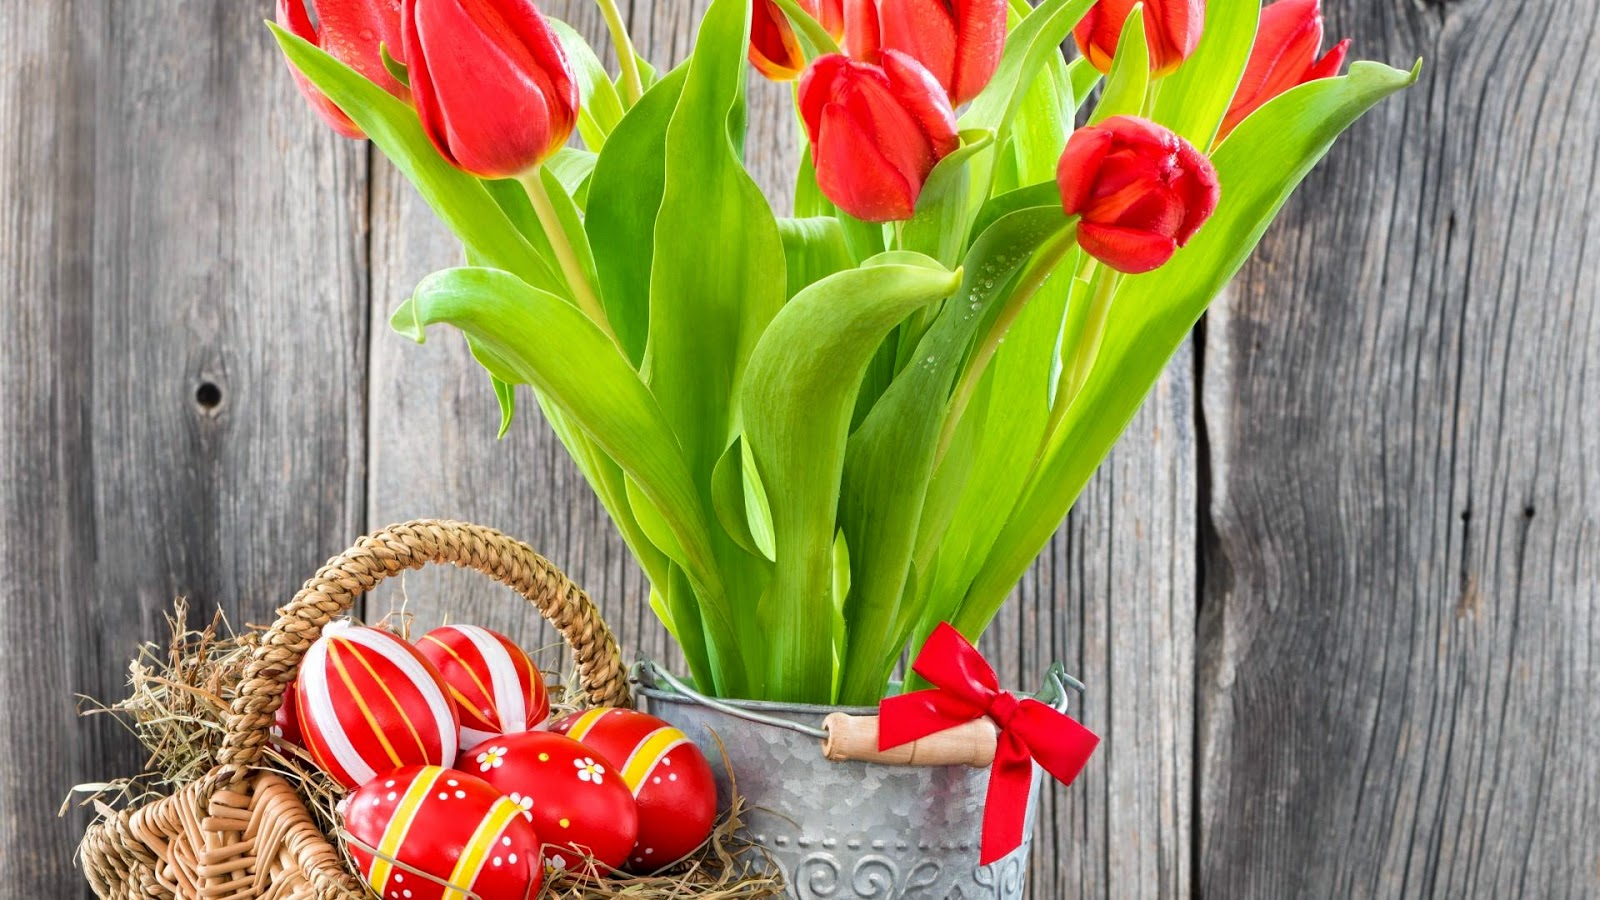 Lovely red tulips